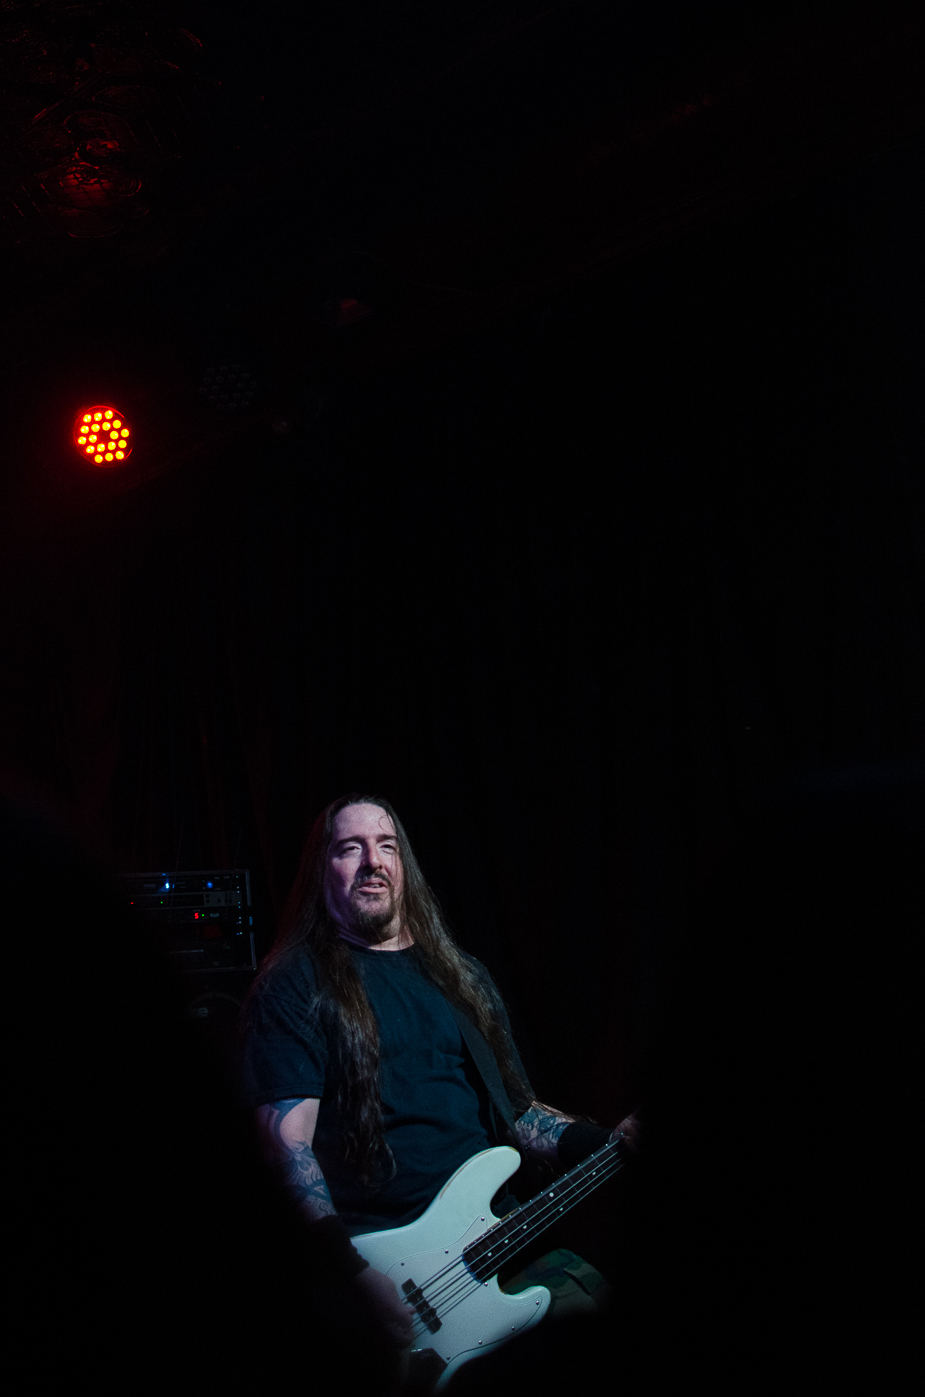 Bryan Trembley of Kriadiaz